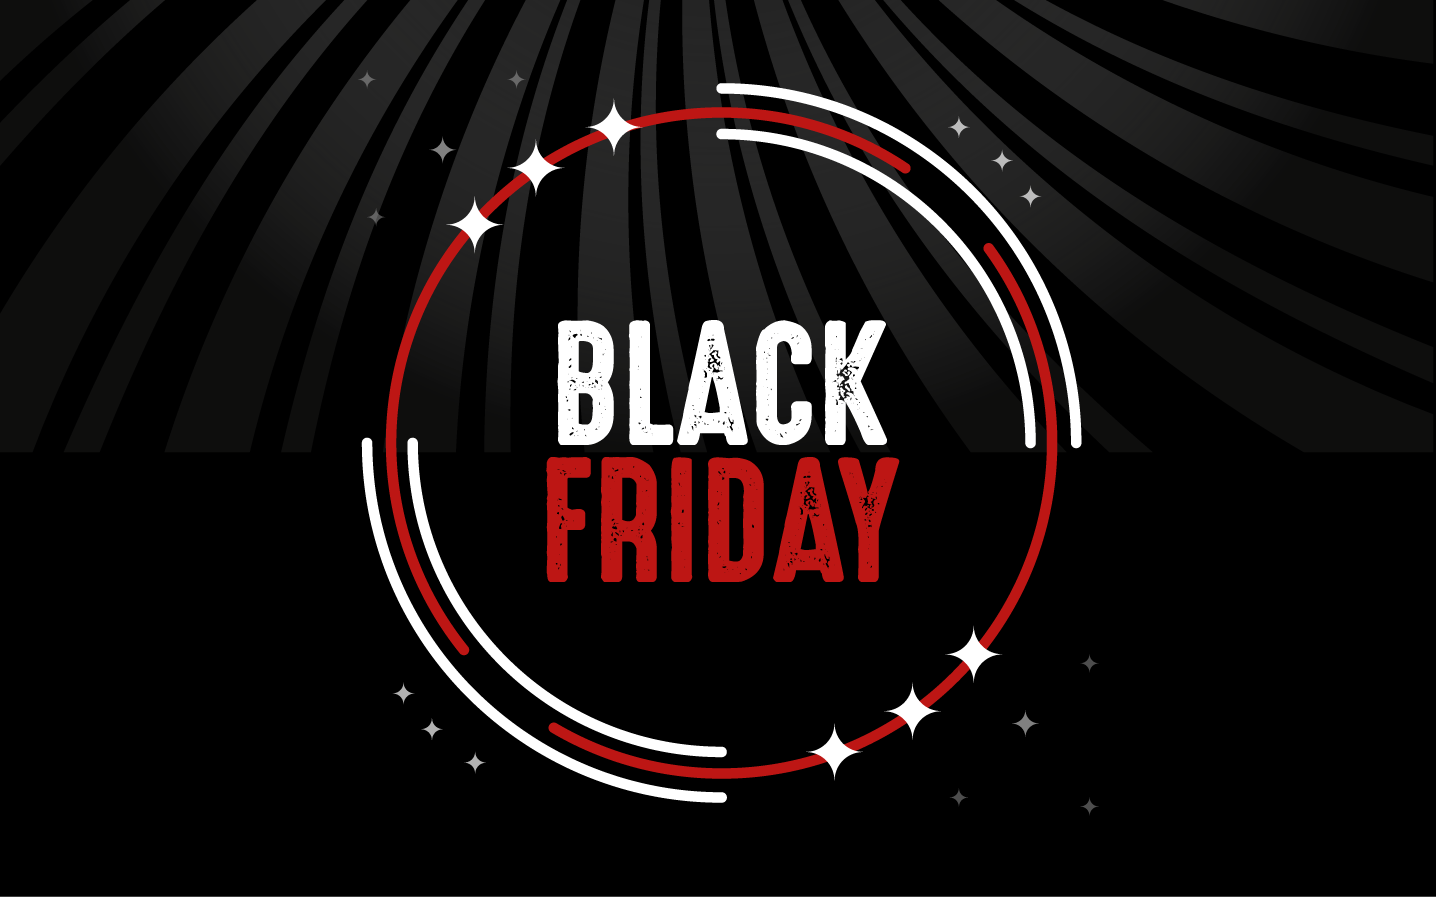 Oferta Black Friday 2019